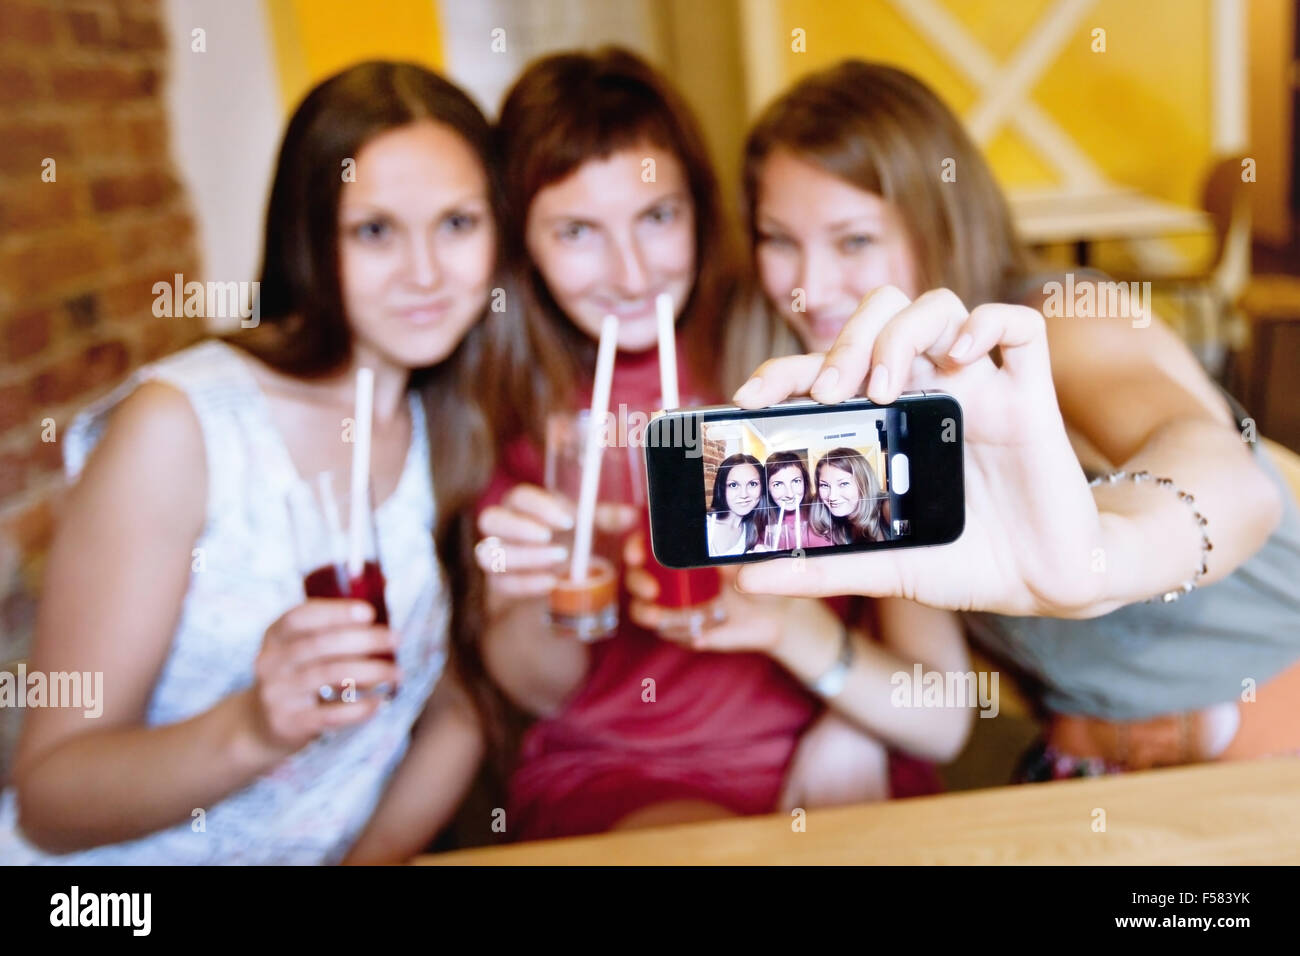 friends taking photo of themselves in cafe during party Stock Photo